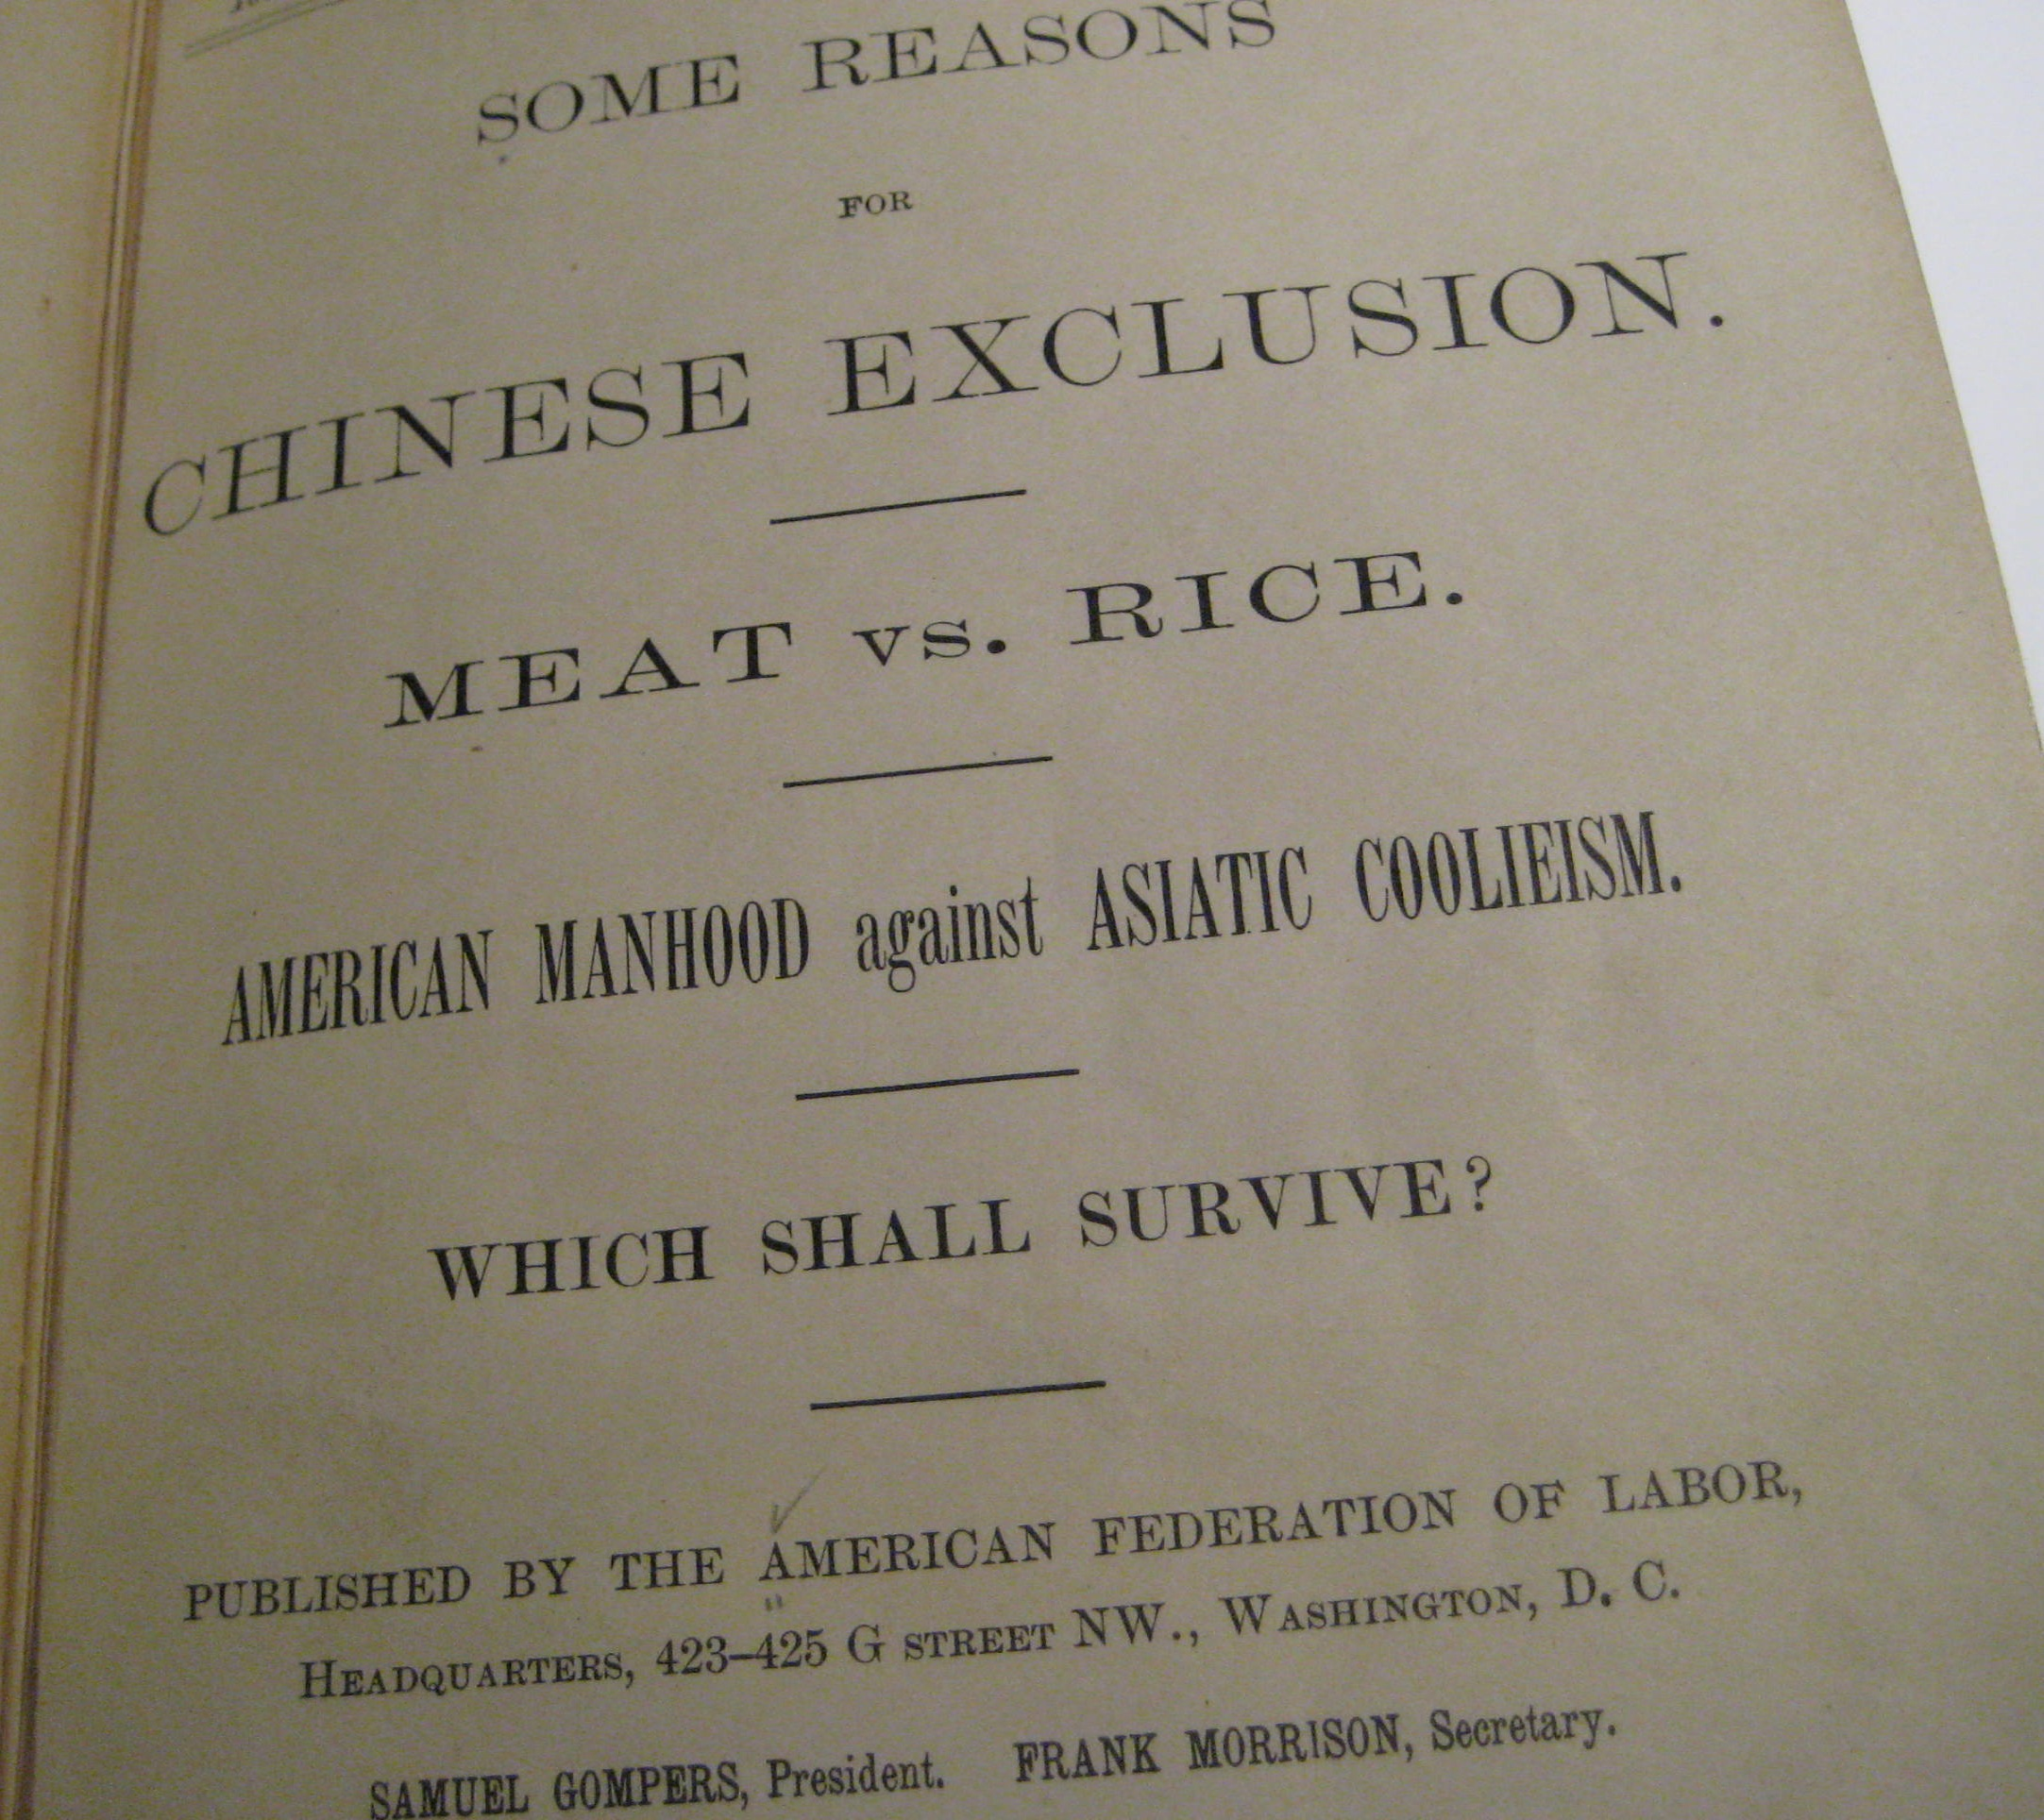 Meat vs. Rice, American Manhood versus Asiatic Coolism